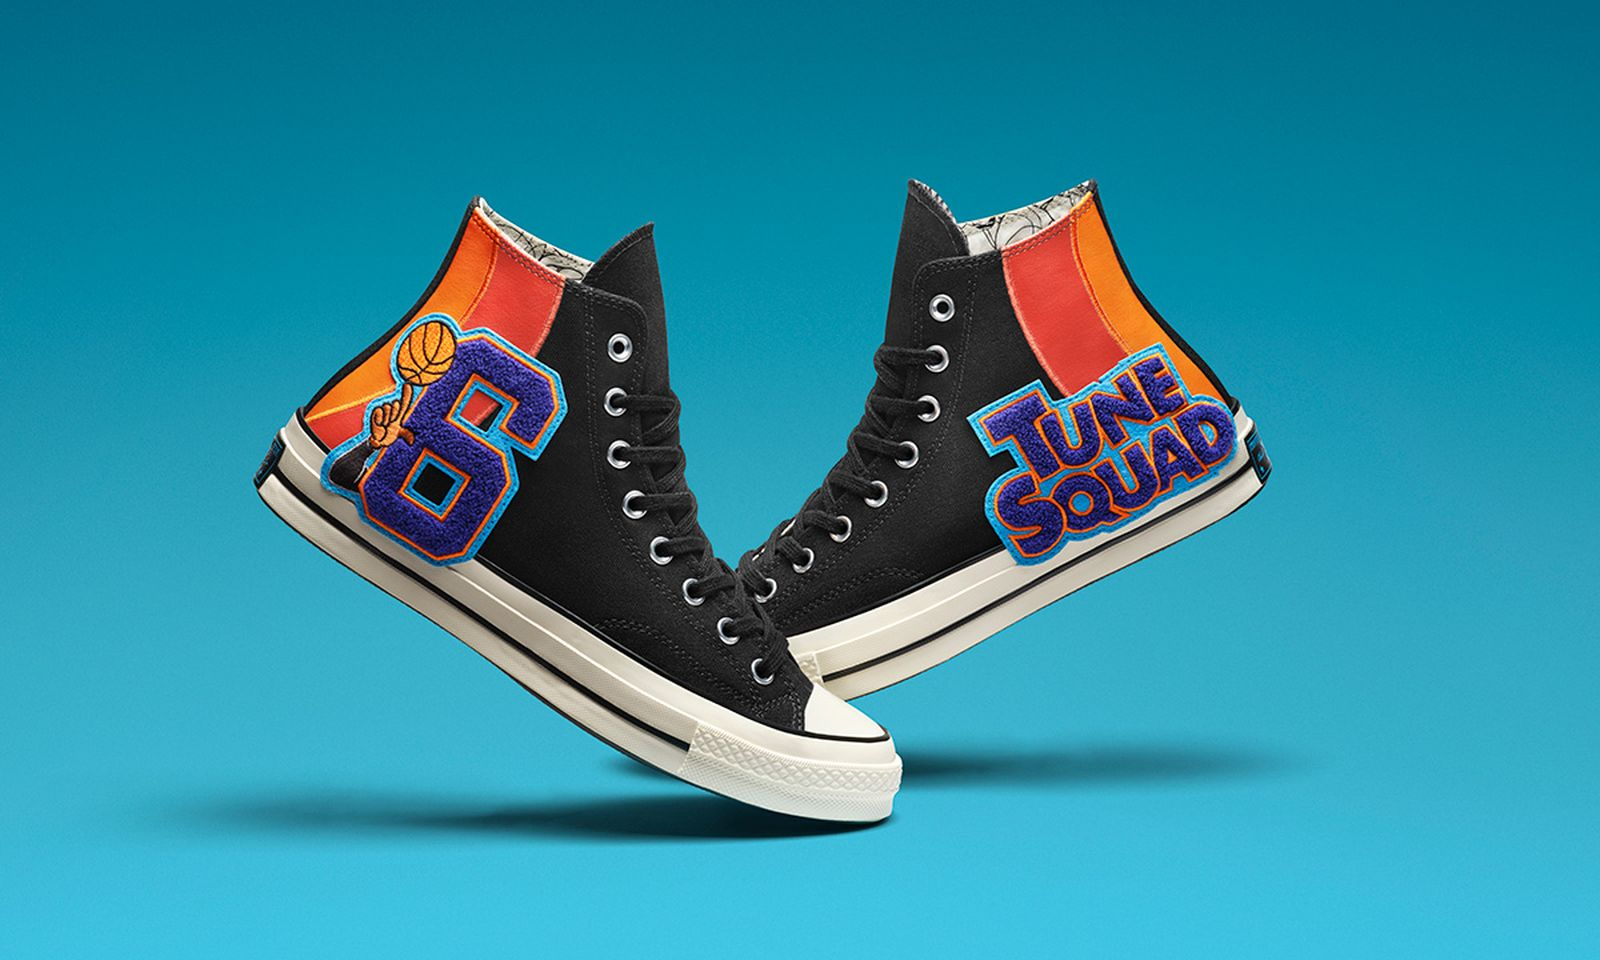 converse-space-jam-2-pack-release-date-price-05